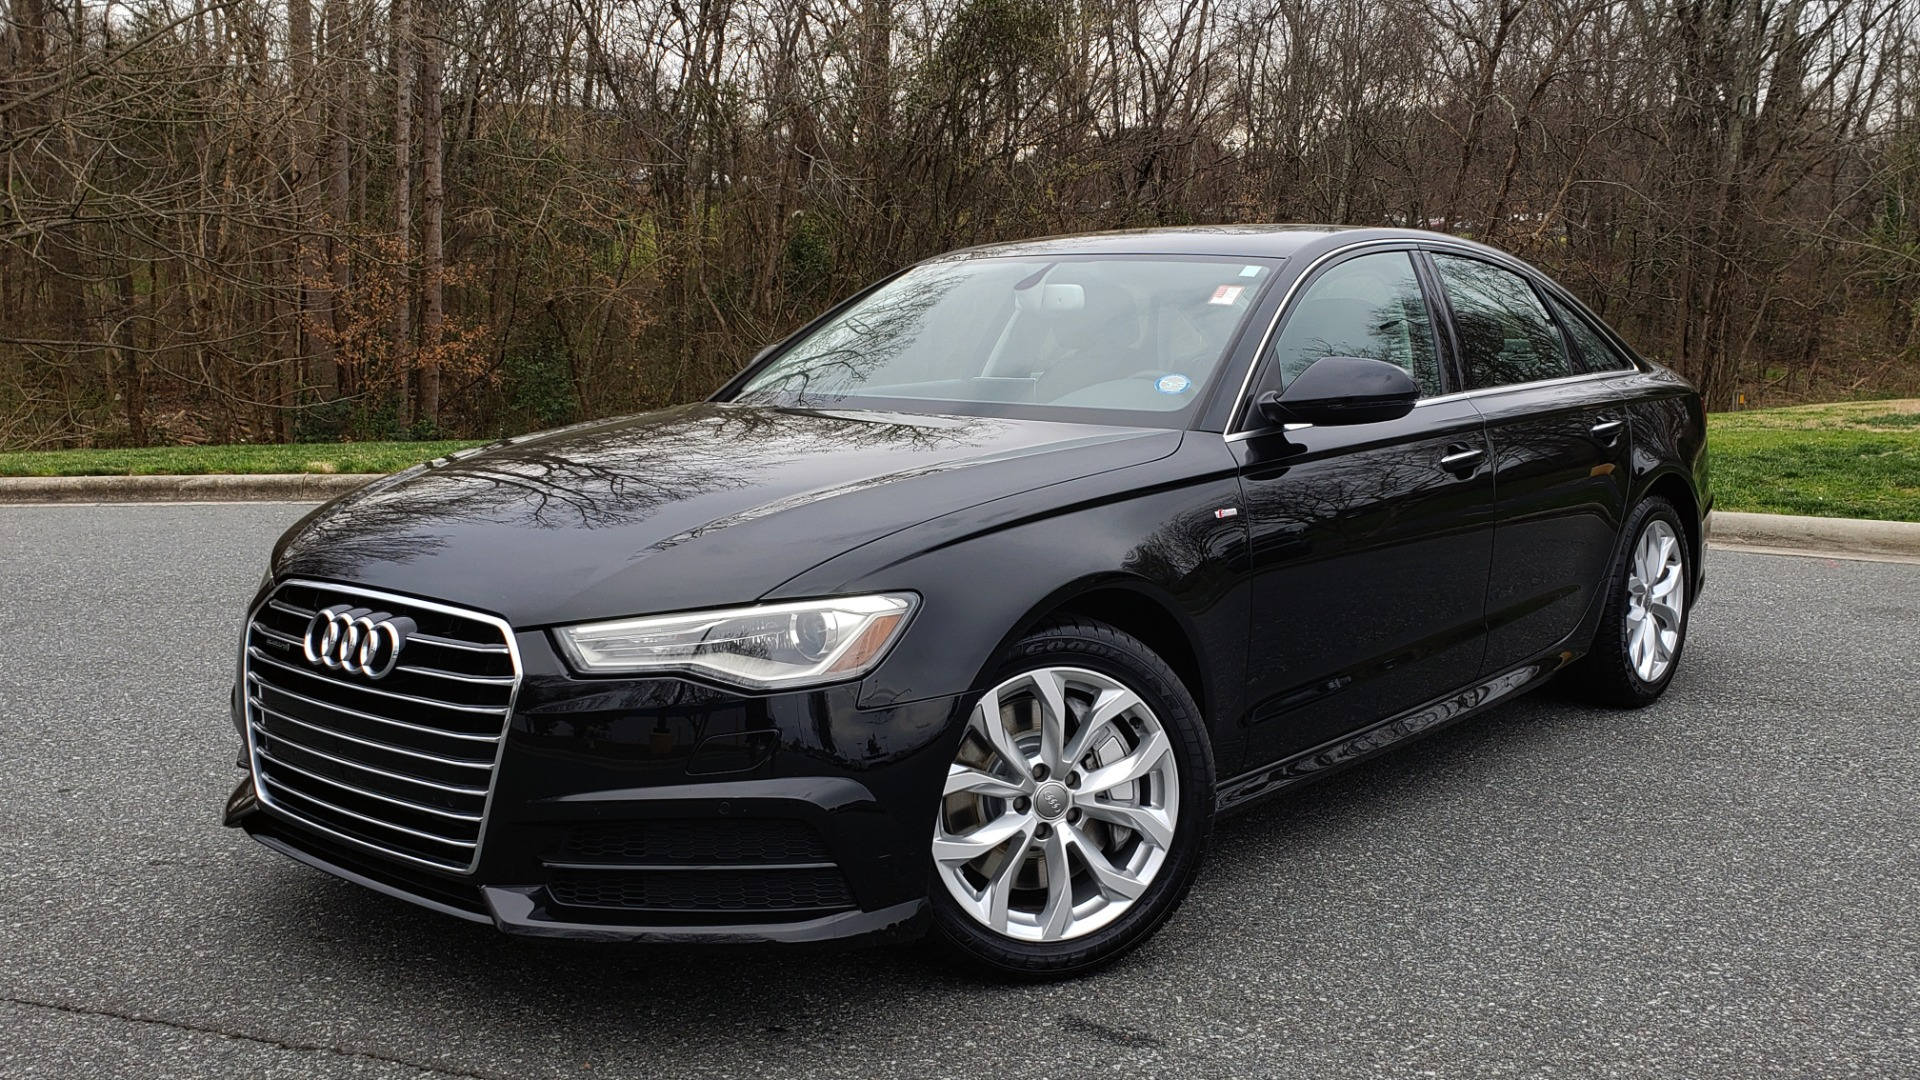 Used 2017 Audi A6 PREMIUM PLUS / NAV / SUNROOF / BOSE / CLD WTHR for sale Sold at Formula Imports in Charlotte NC 28227 1